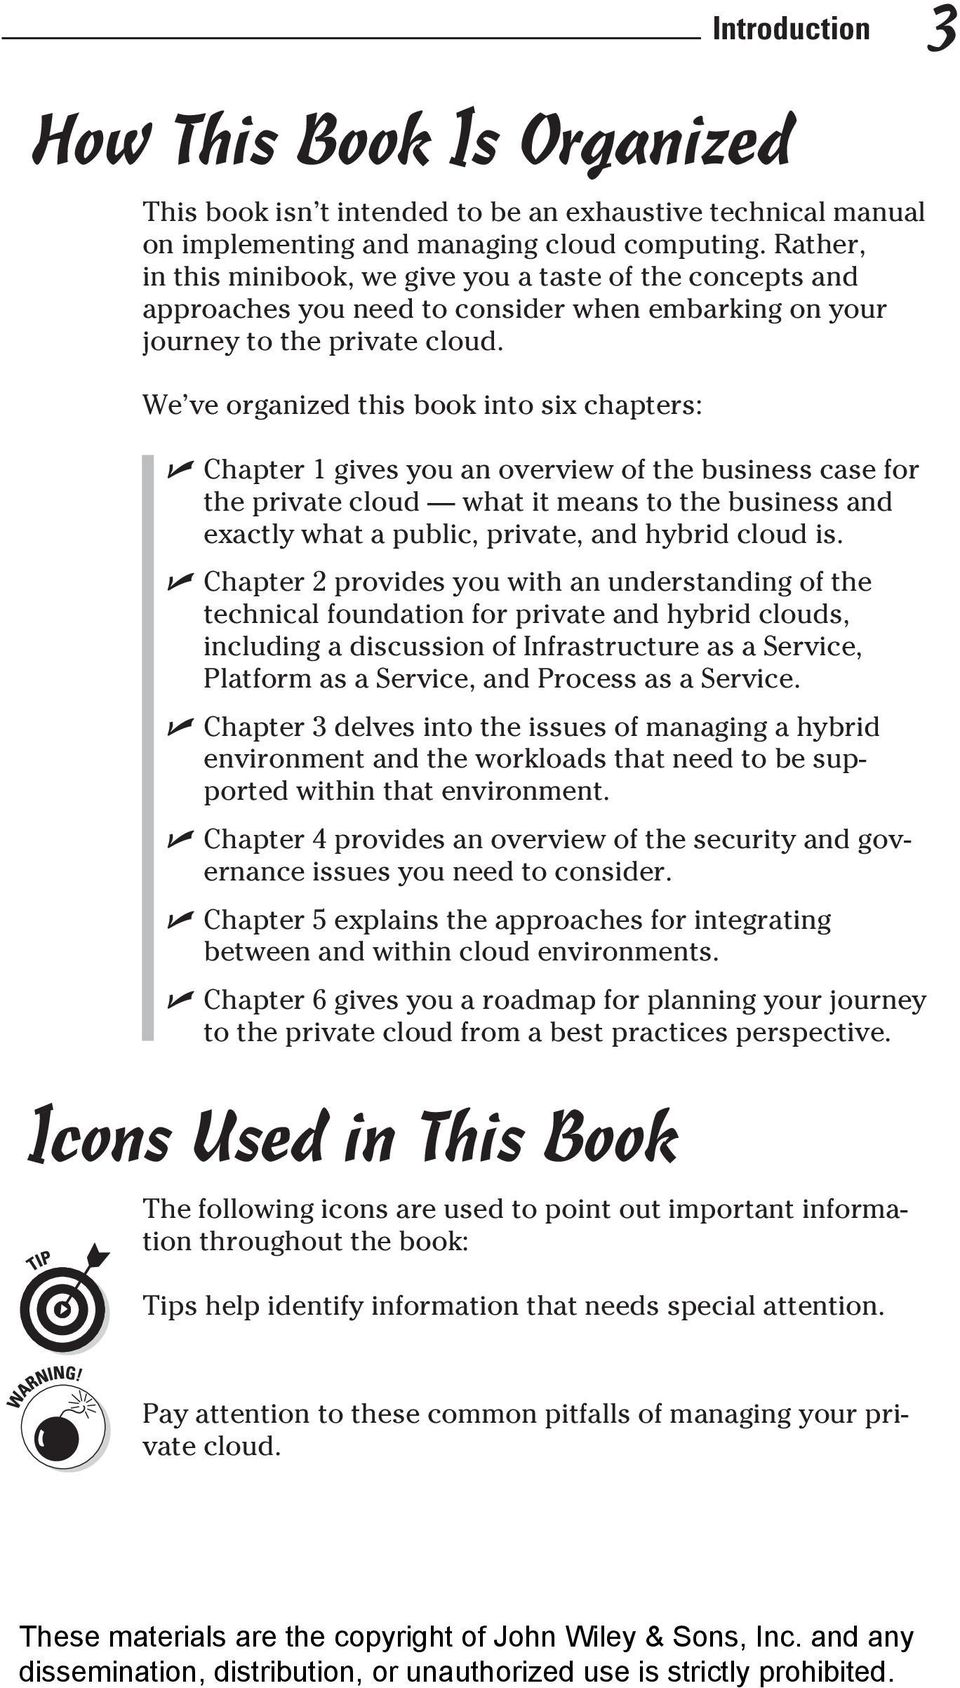 We ve organized this book into six chapters: Chapter 1 gives you an overview of the business case for the private cloud what it means to the business and exactly what a public, private, and hybrid